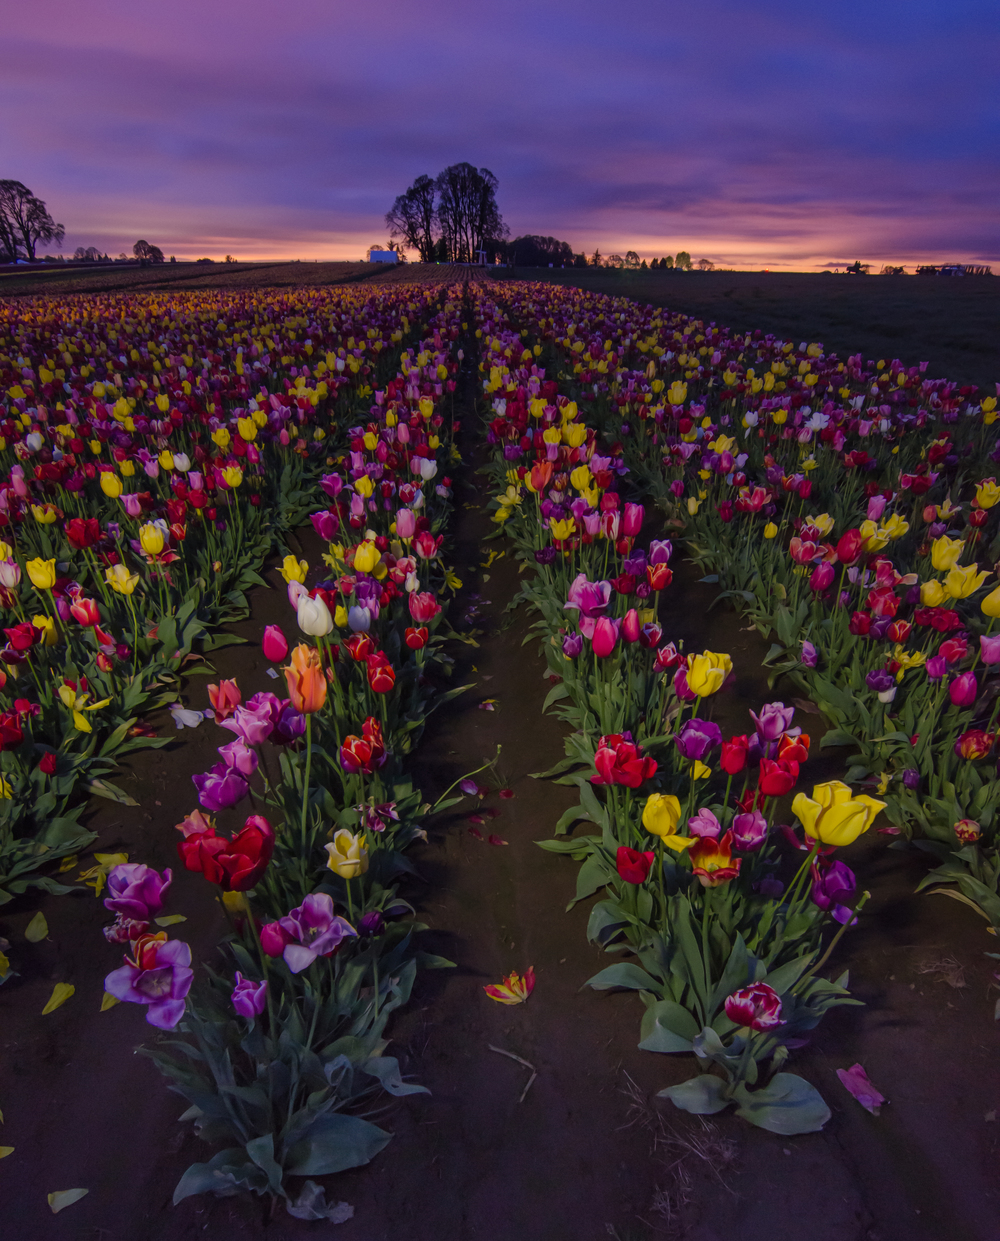 A shot before sunrise looking down some rows of various colored tulips.